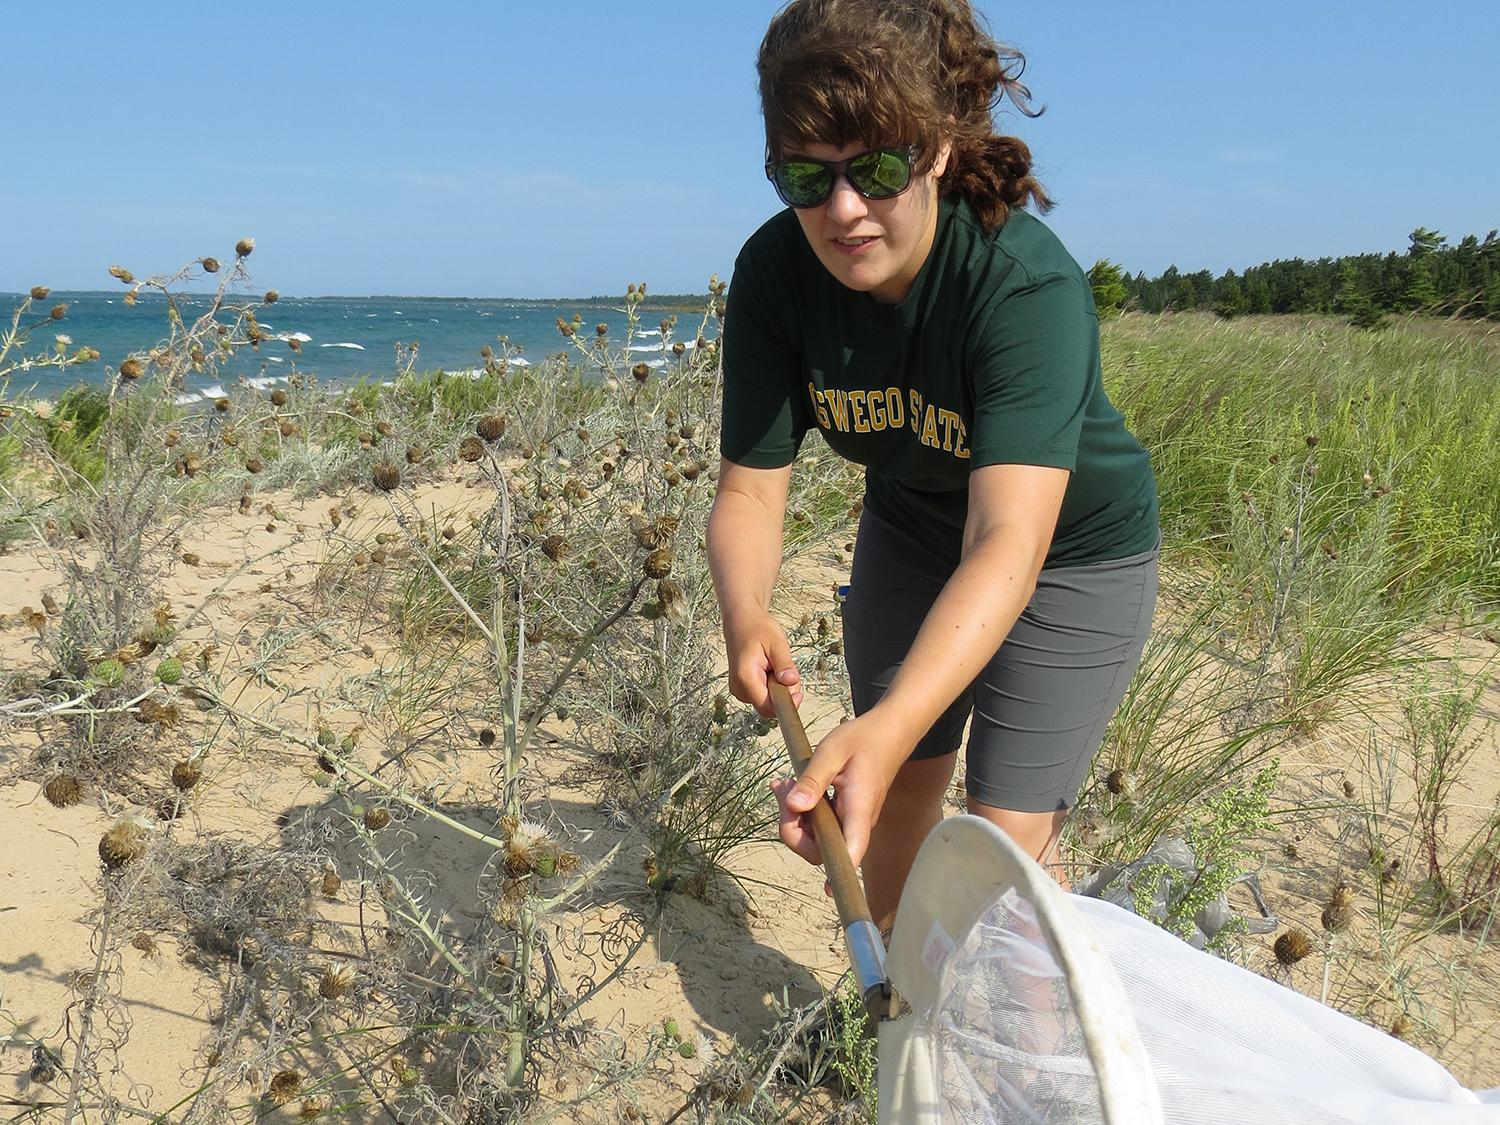 Stephanie Facchine working with rare, threatened Pitcher's thistle plants